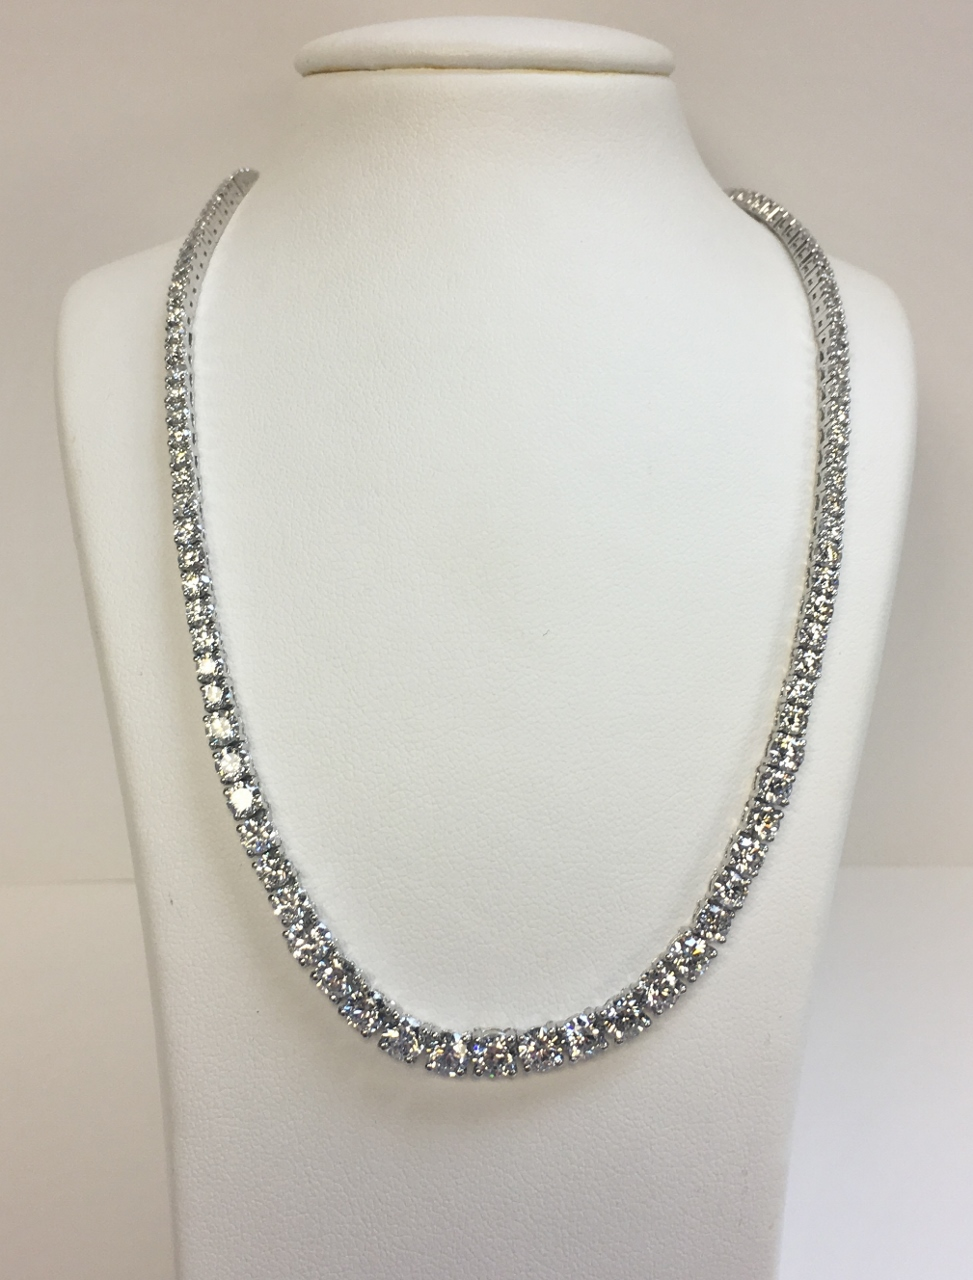 10 Carats Diamond Tennis Necklace